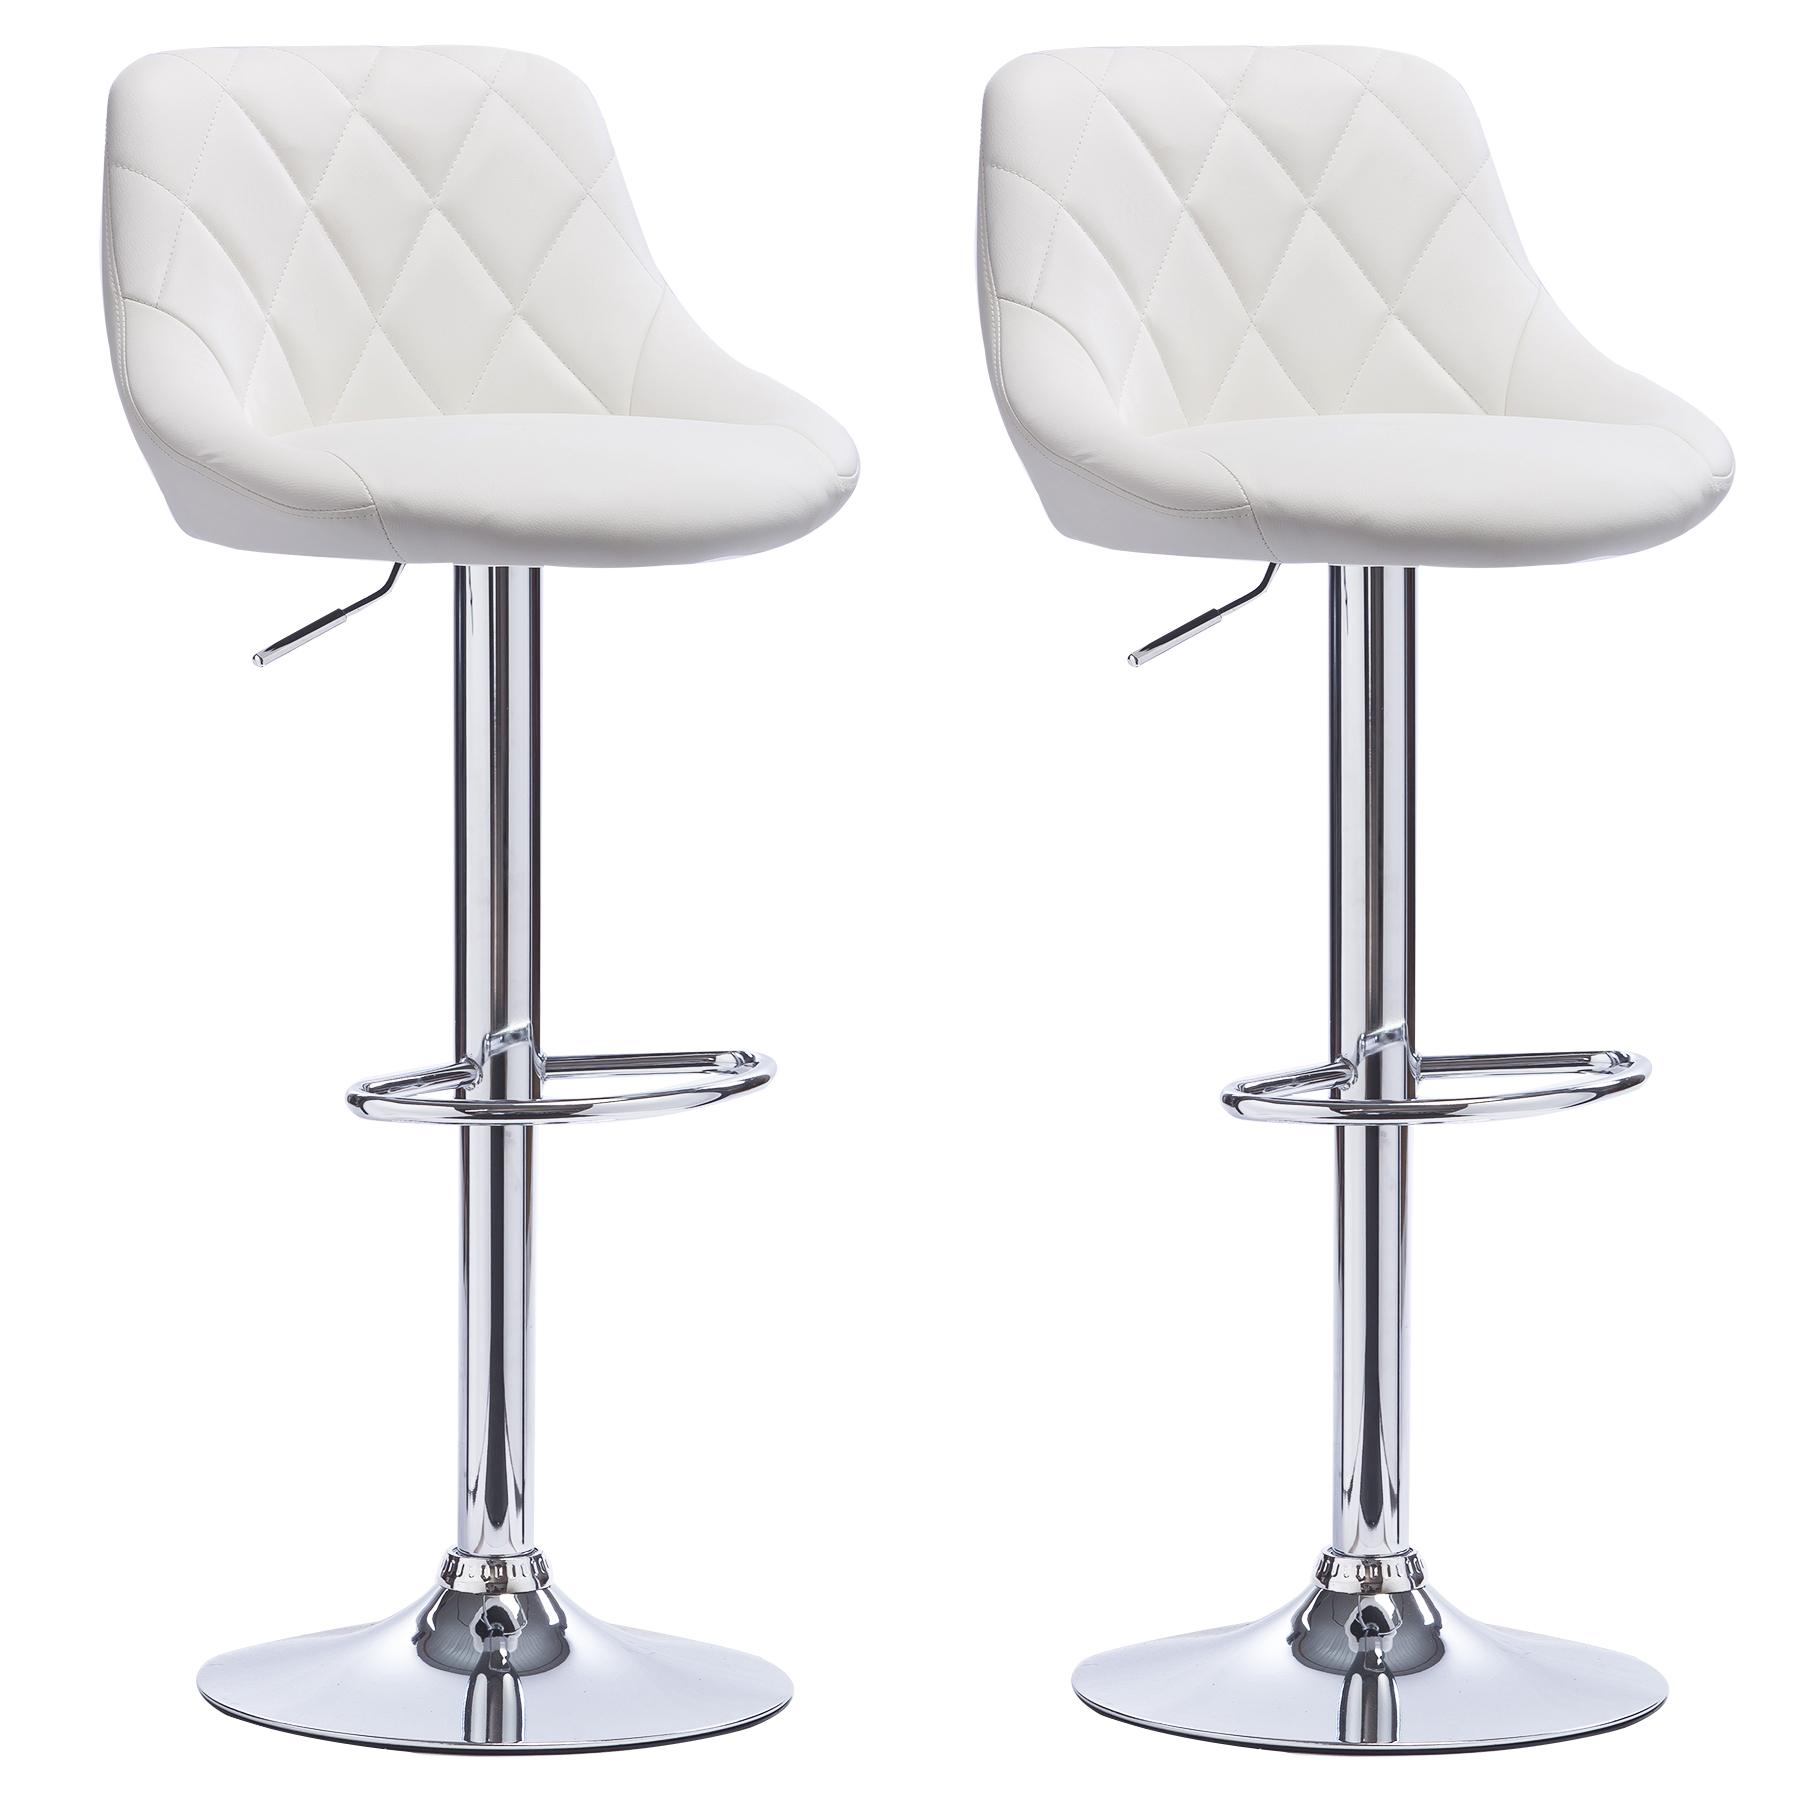 1 2 x bar stools faux leather kitchen chrome stool breakfast chair white u012 ebay. Black Bedroom Furniture Sets. Home Design Ideas